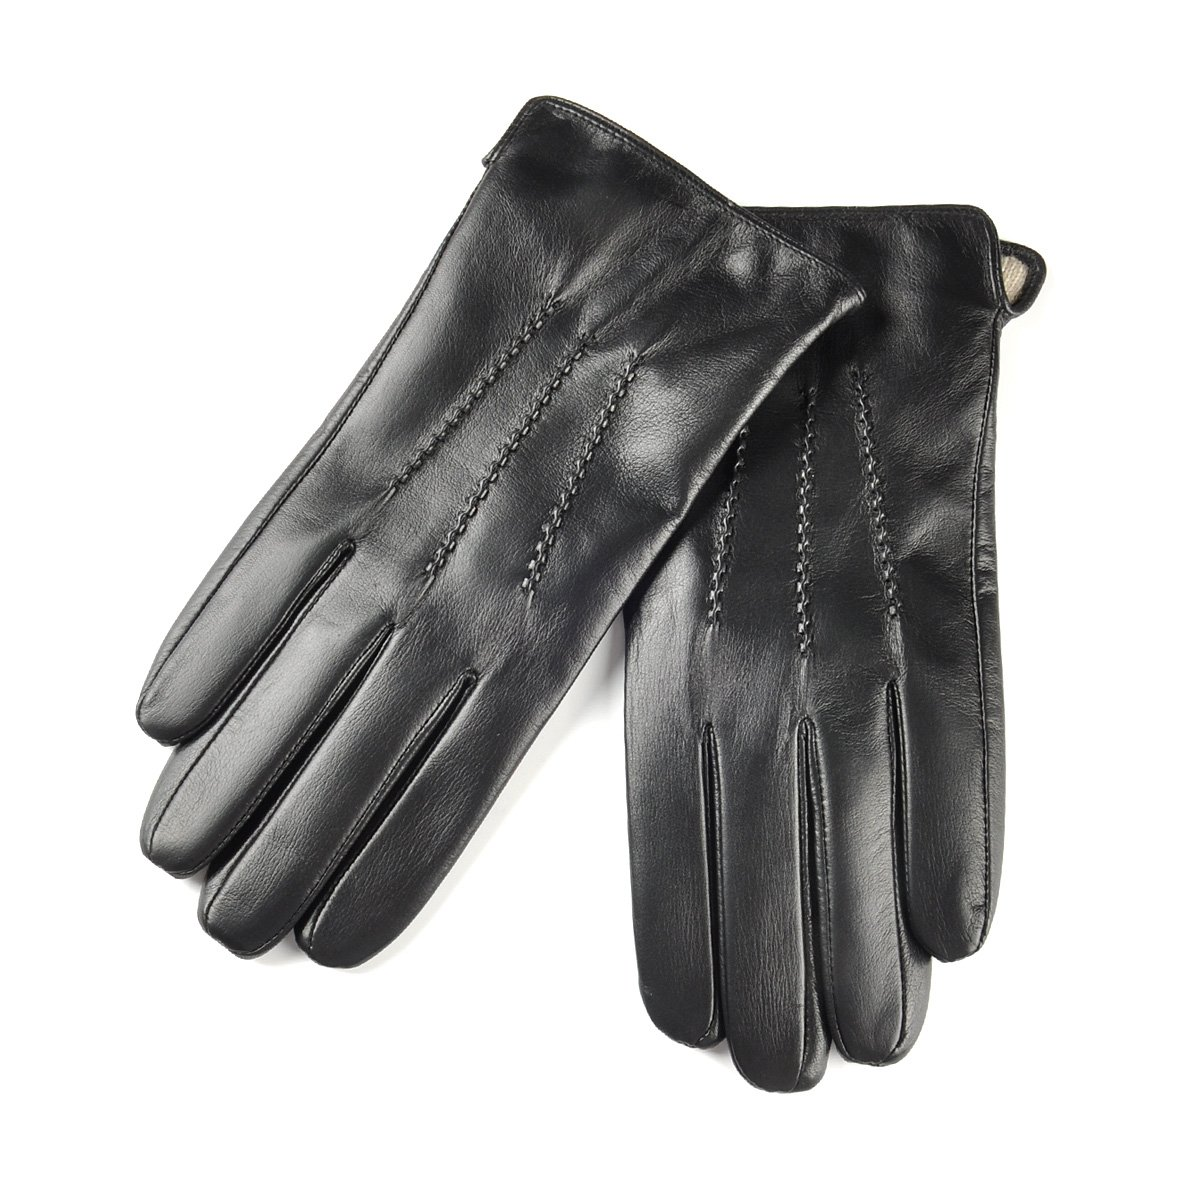 SIEFERSN Hot Selling Classic Style Men's Nappa Leather Full The Palm Touchscreen Gloves Winter Warm Leather Gloves 1154225011 (Large 9'', Black (Full Touchscreen/Soft flannel Lining))